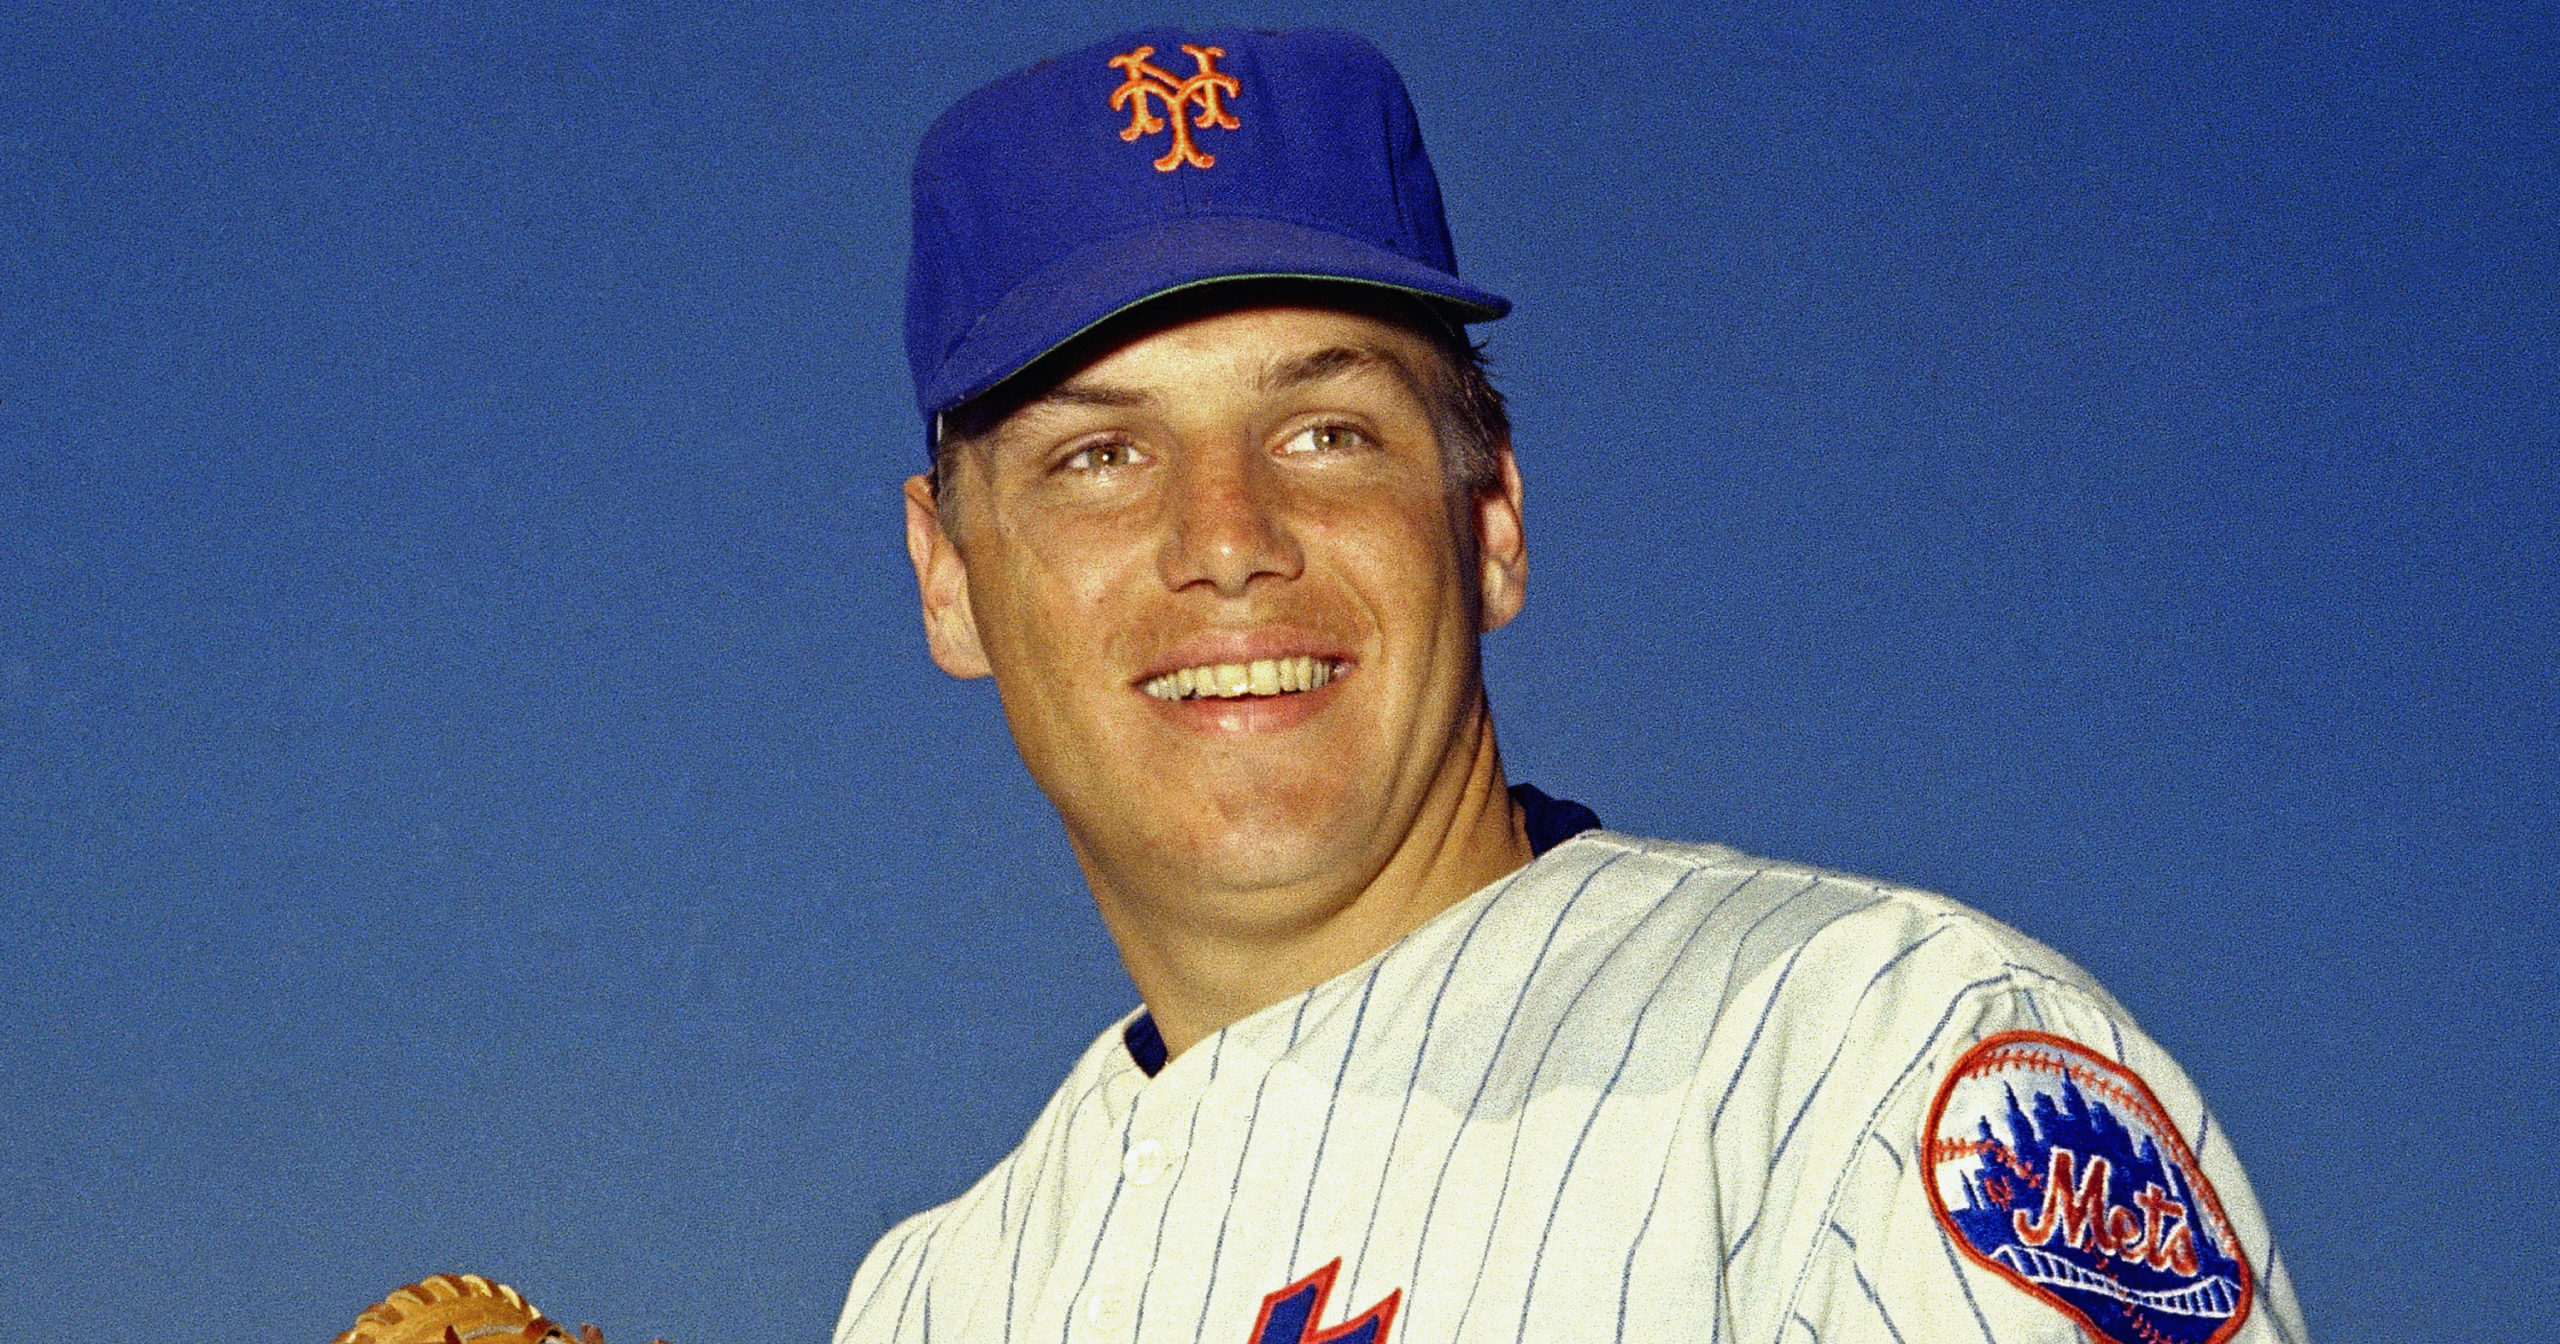 In this March 1968 file photo, New York Mets pitcher Tom Seaver poses for a photo. Seaver, the galvanizing leader of the Miracle Mets 1969 championship team, has died. He was 75. The Hall of Fame said on Sept. 2, 2020, that Seaver died on Aug. 31 from complications of Lewy body dementia.